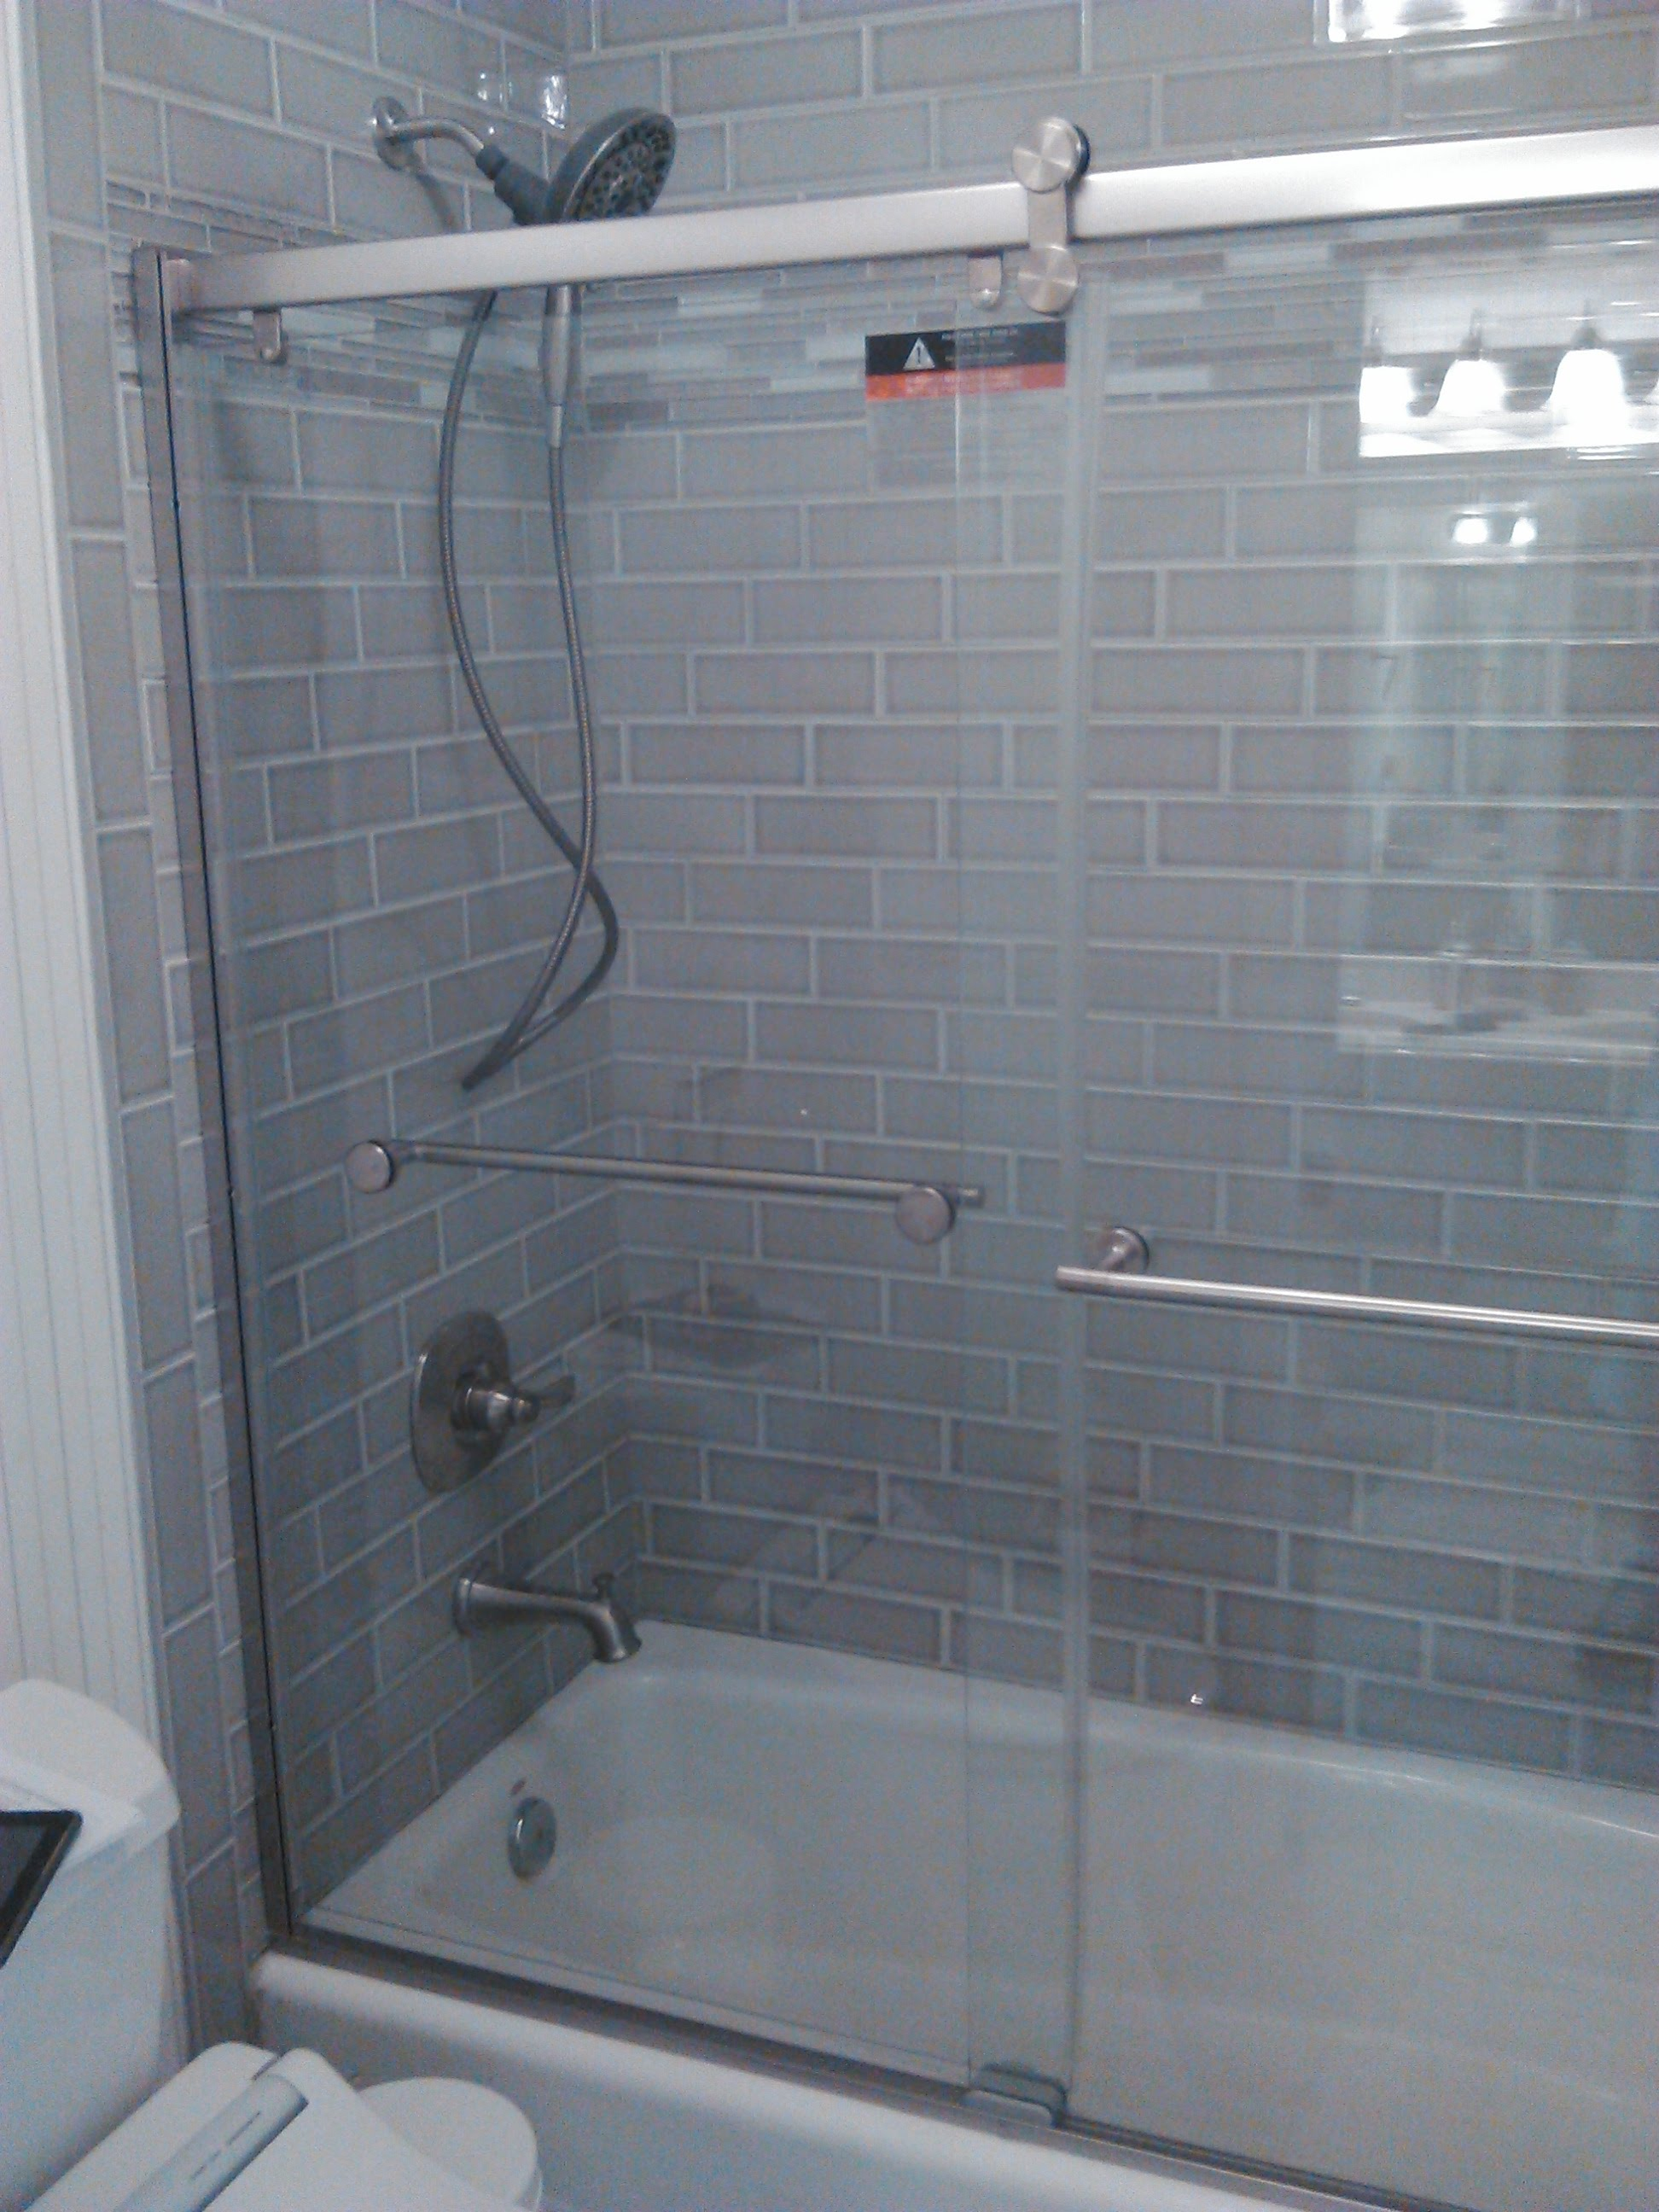 Shower door installation   Mr. Fix It Handyman Service of Jacksonville